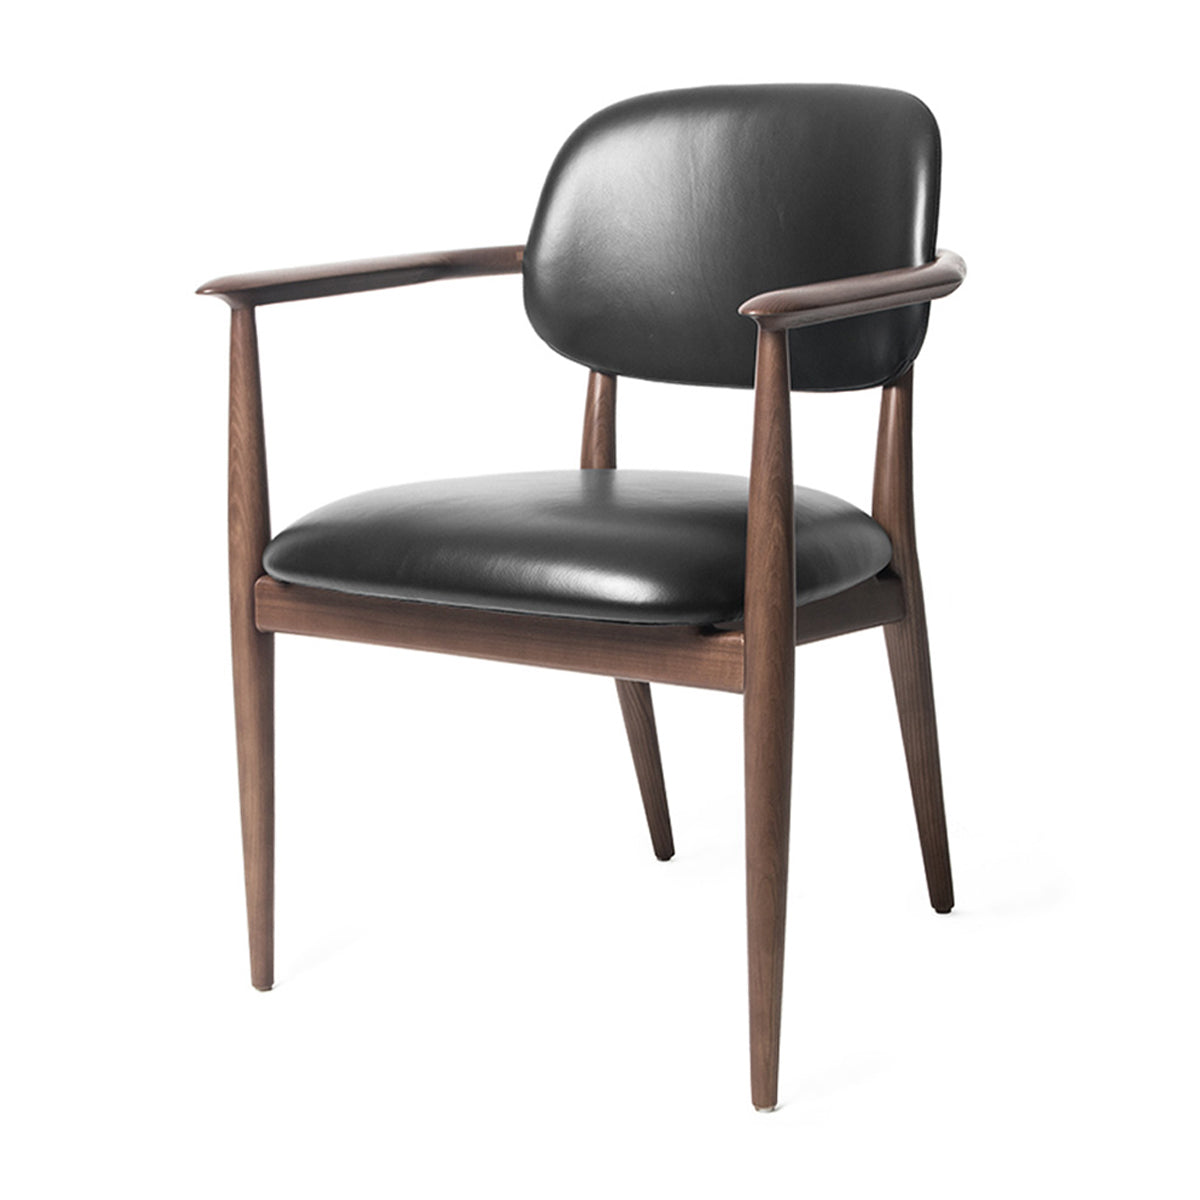 Strange Slow Dining Chair Caraccident5 Cool Chair Designs And Ideas Caraccident5Info